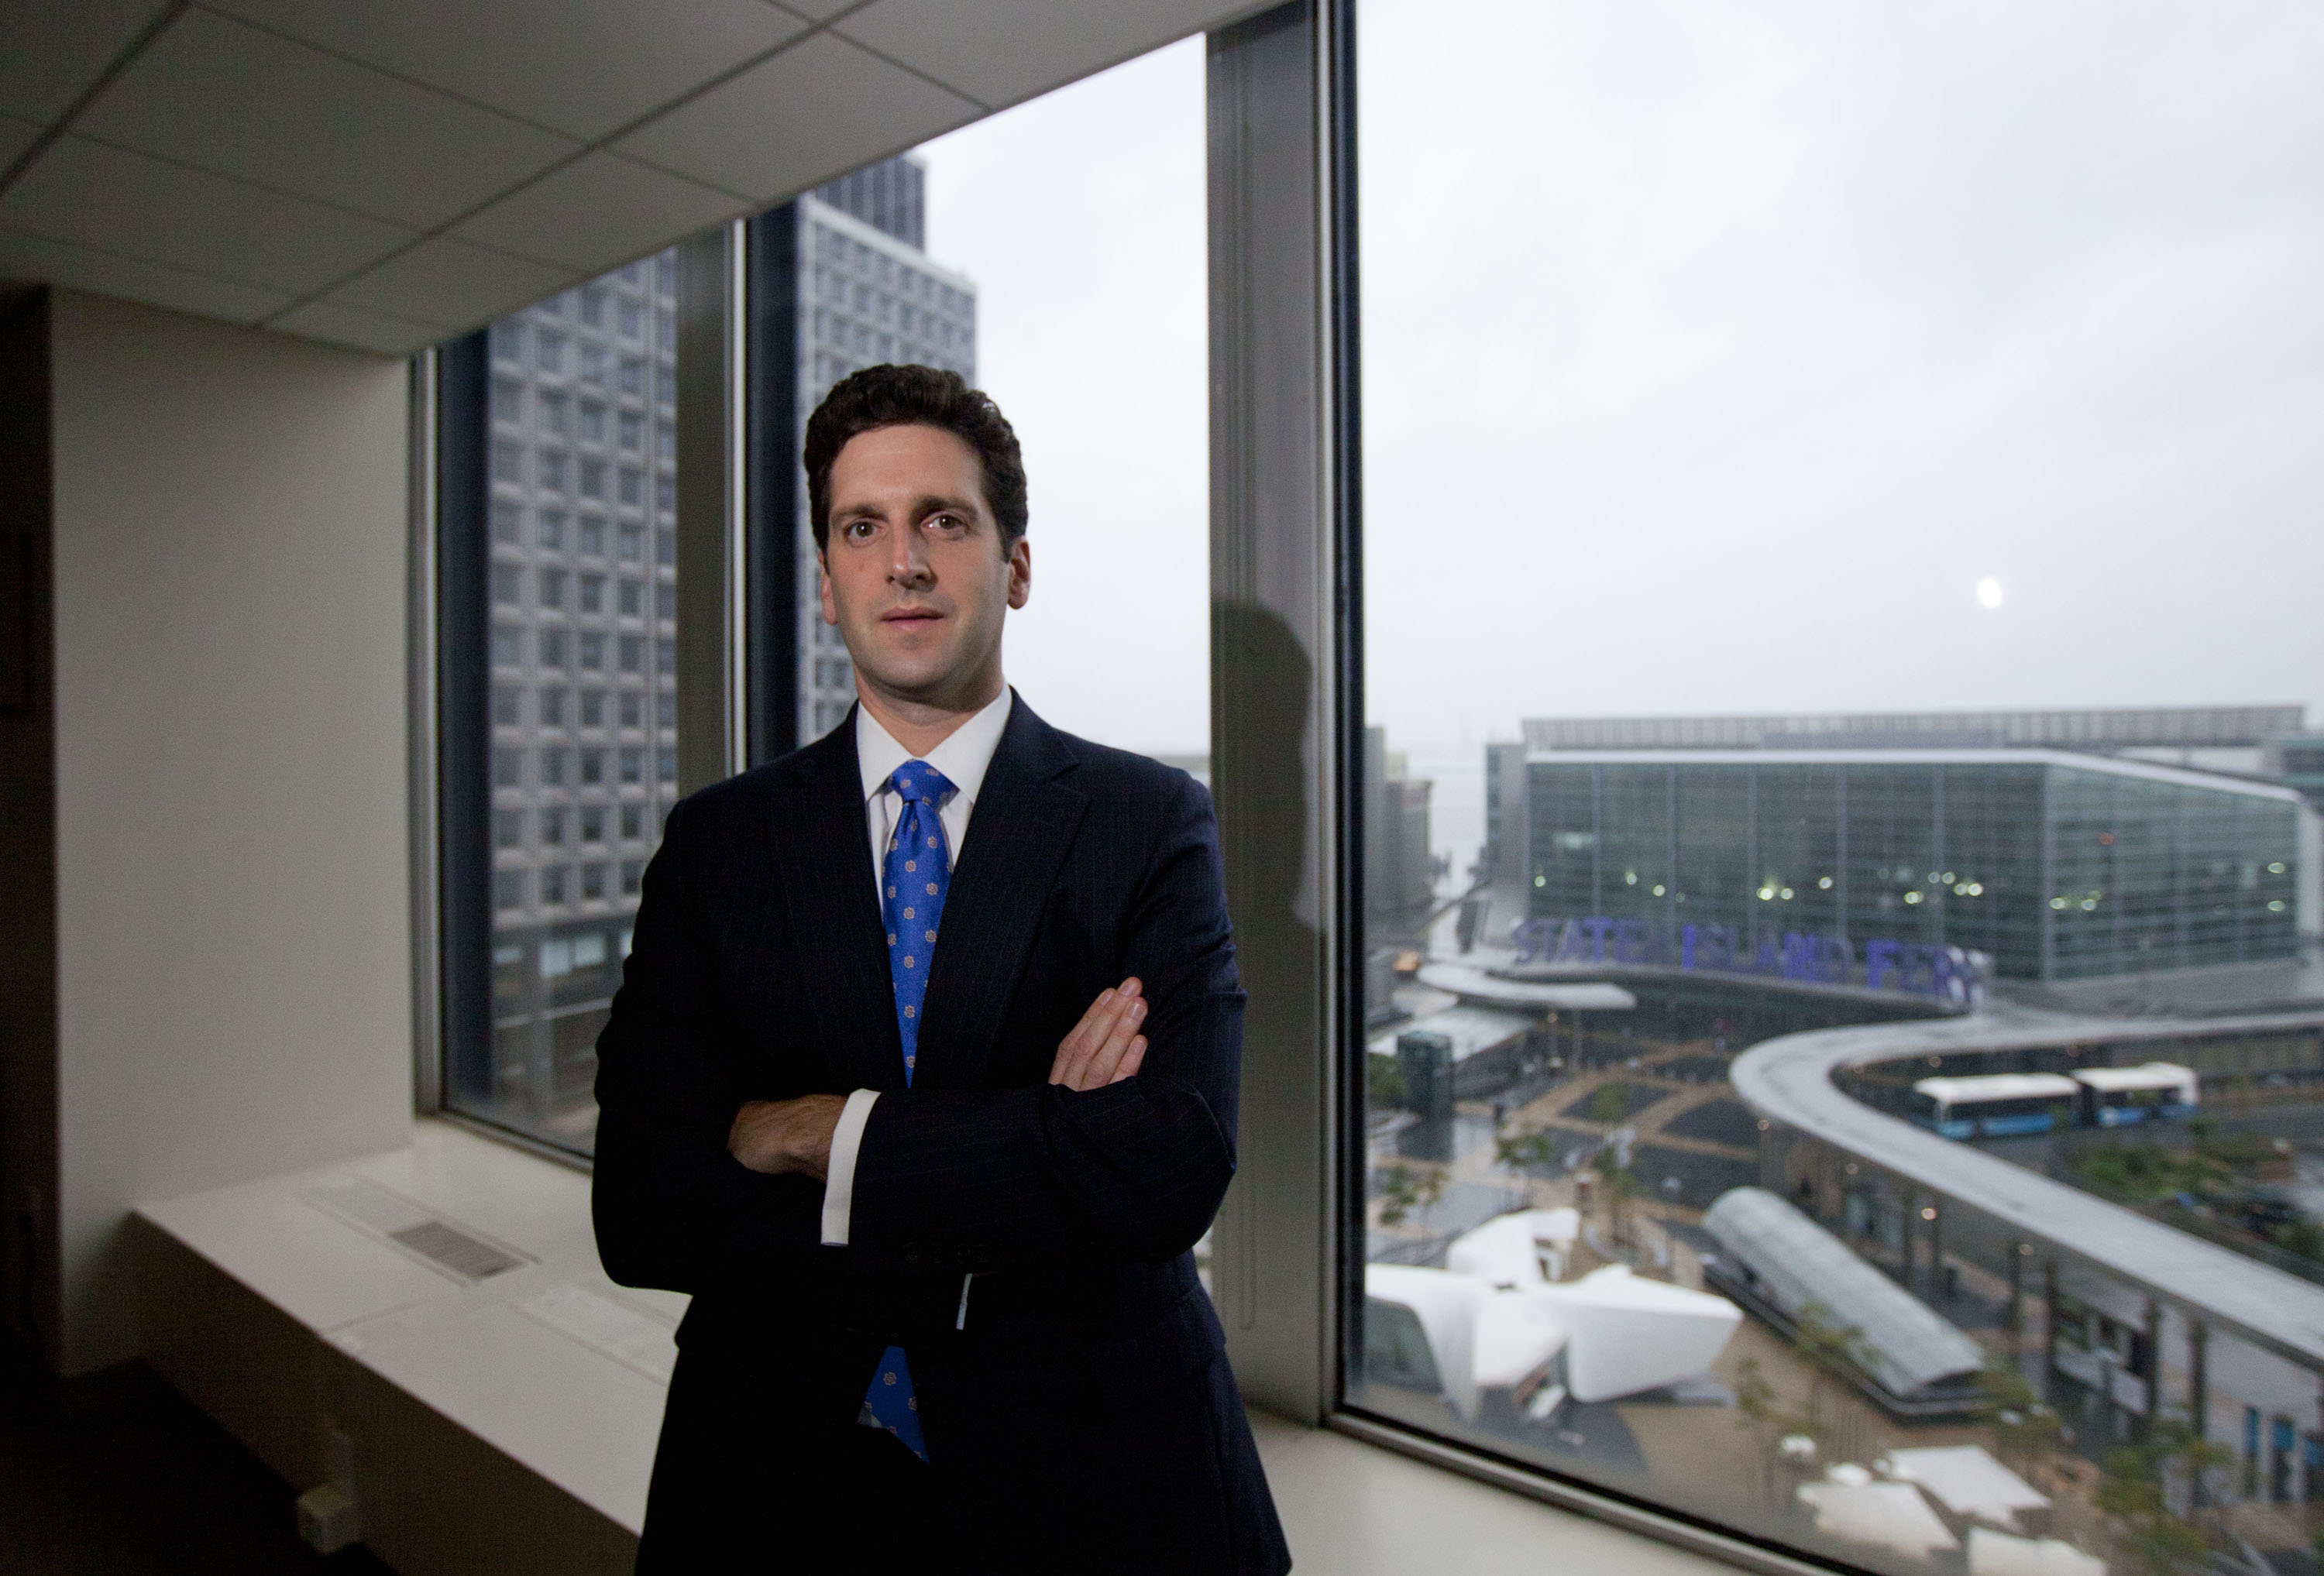 New York State Department Of Financial Services Superintendent Benjamin Lawsky Portraits